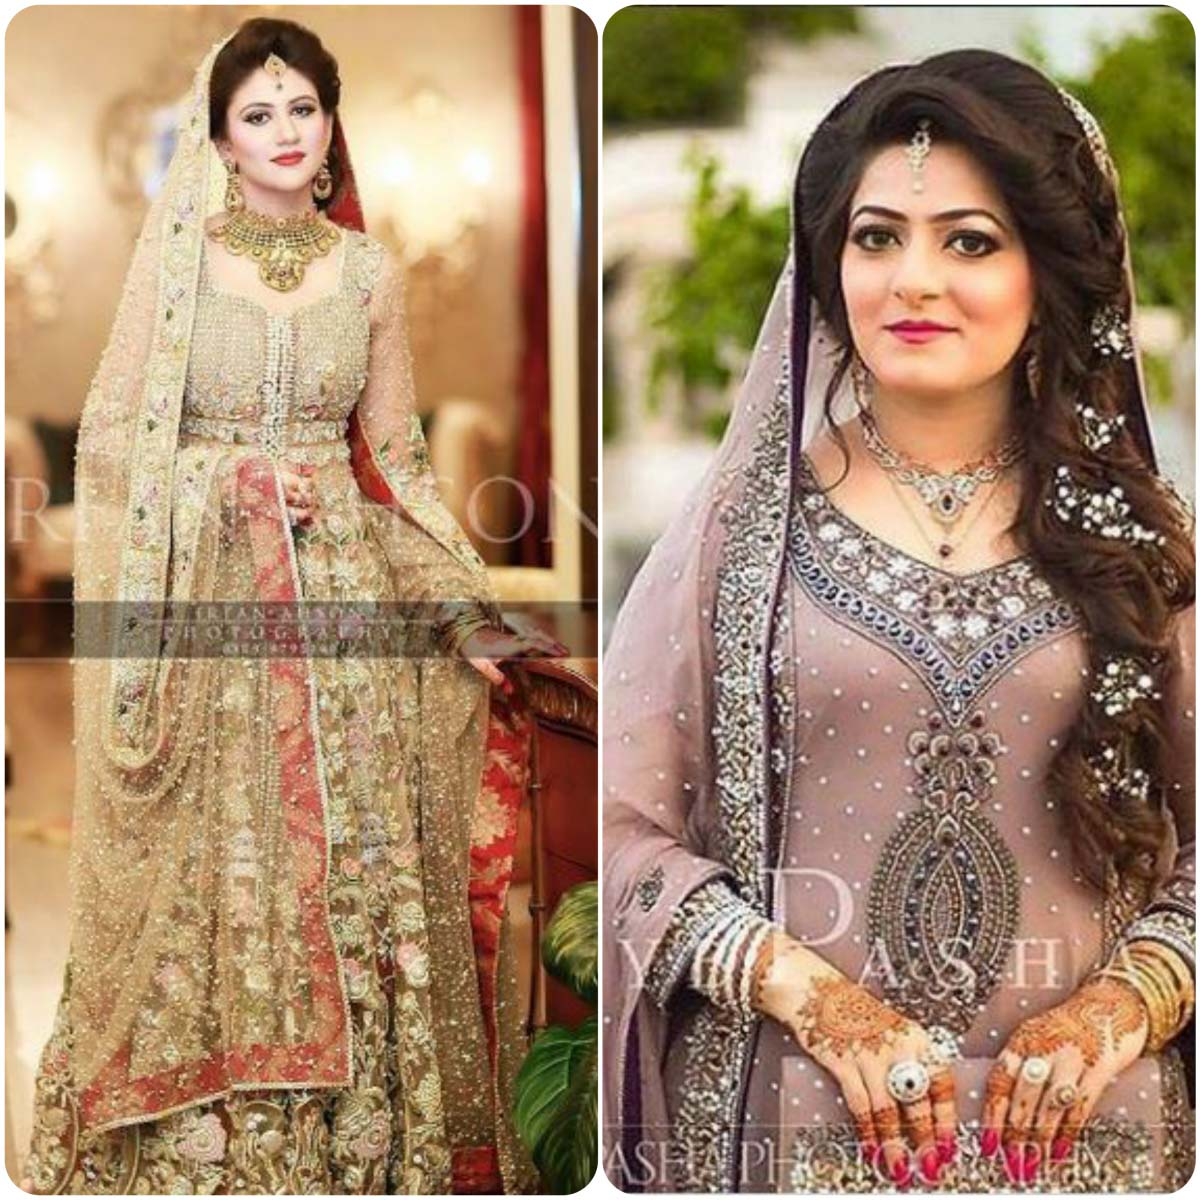 Hairstyles Pakistani Waleema: Walima/Reception Dresses For Wedding Bridals